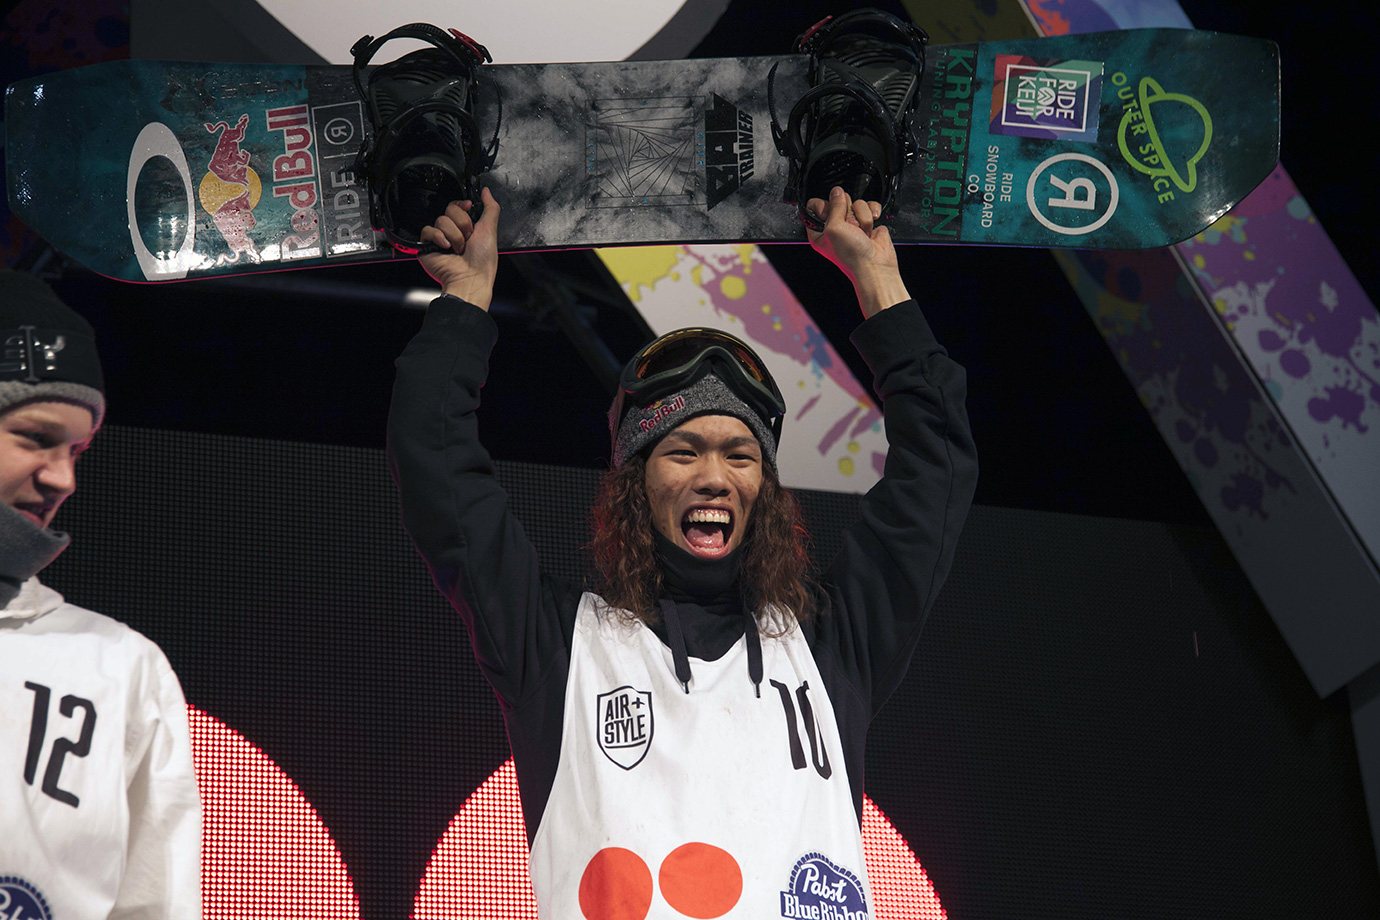 Kadono has had a very good season of big air riding. He made the X Games podium with a bronze medal and has now won the Air+Style L.A. competition.